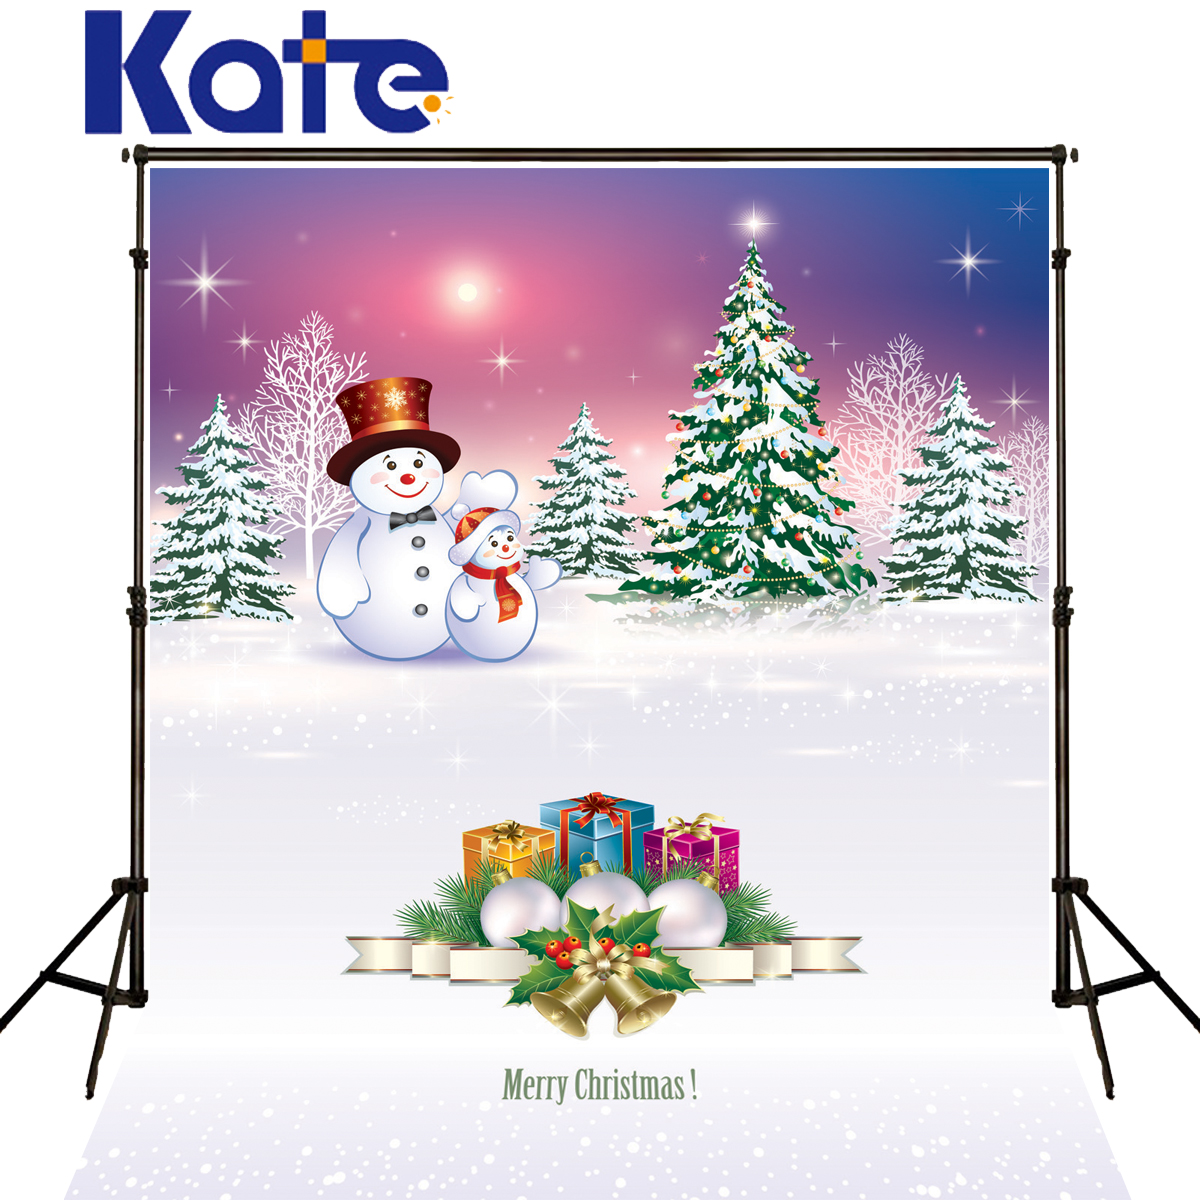 Christmas Background Gif Us 29 99 Christmas Backgrounds Snowman Gif Star Light Photocall Trees Balls Newborn Photography Props Kate Backdrops In Background From Consumer